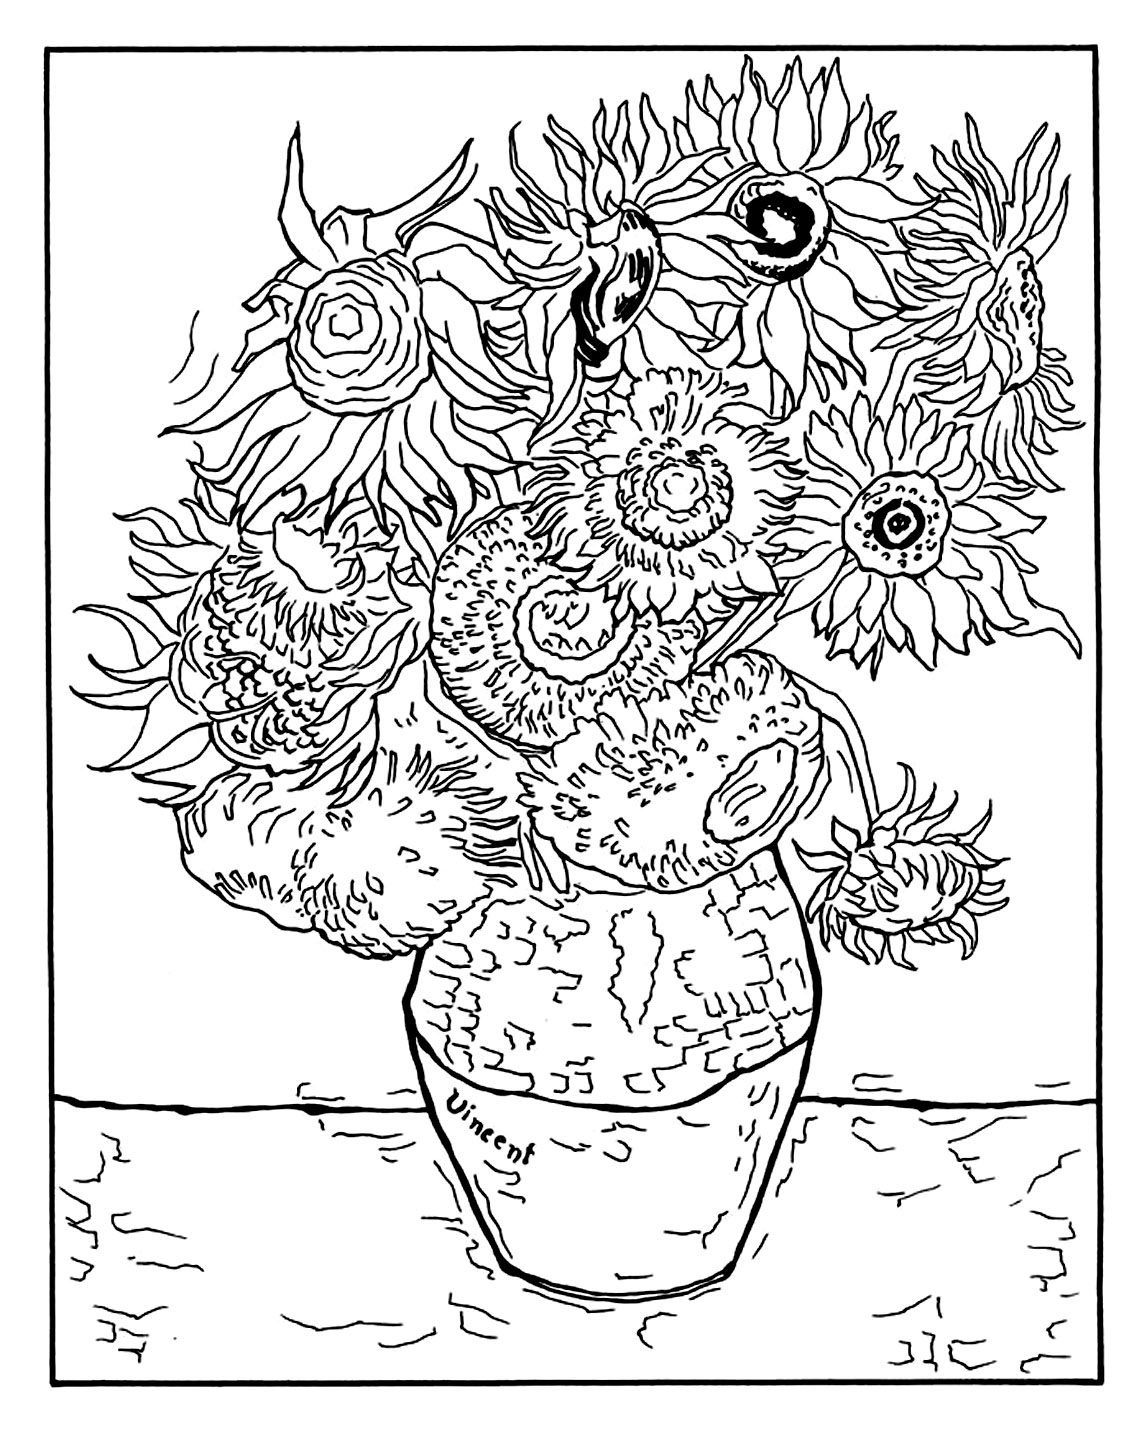 Coloring page created from 'Vase with Twelve Sunflowers' by Vincent Van Gogh